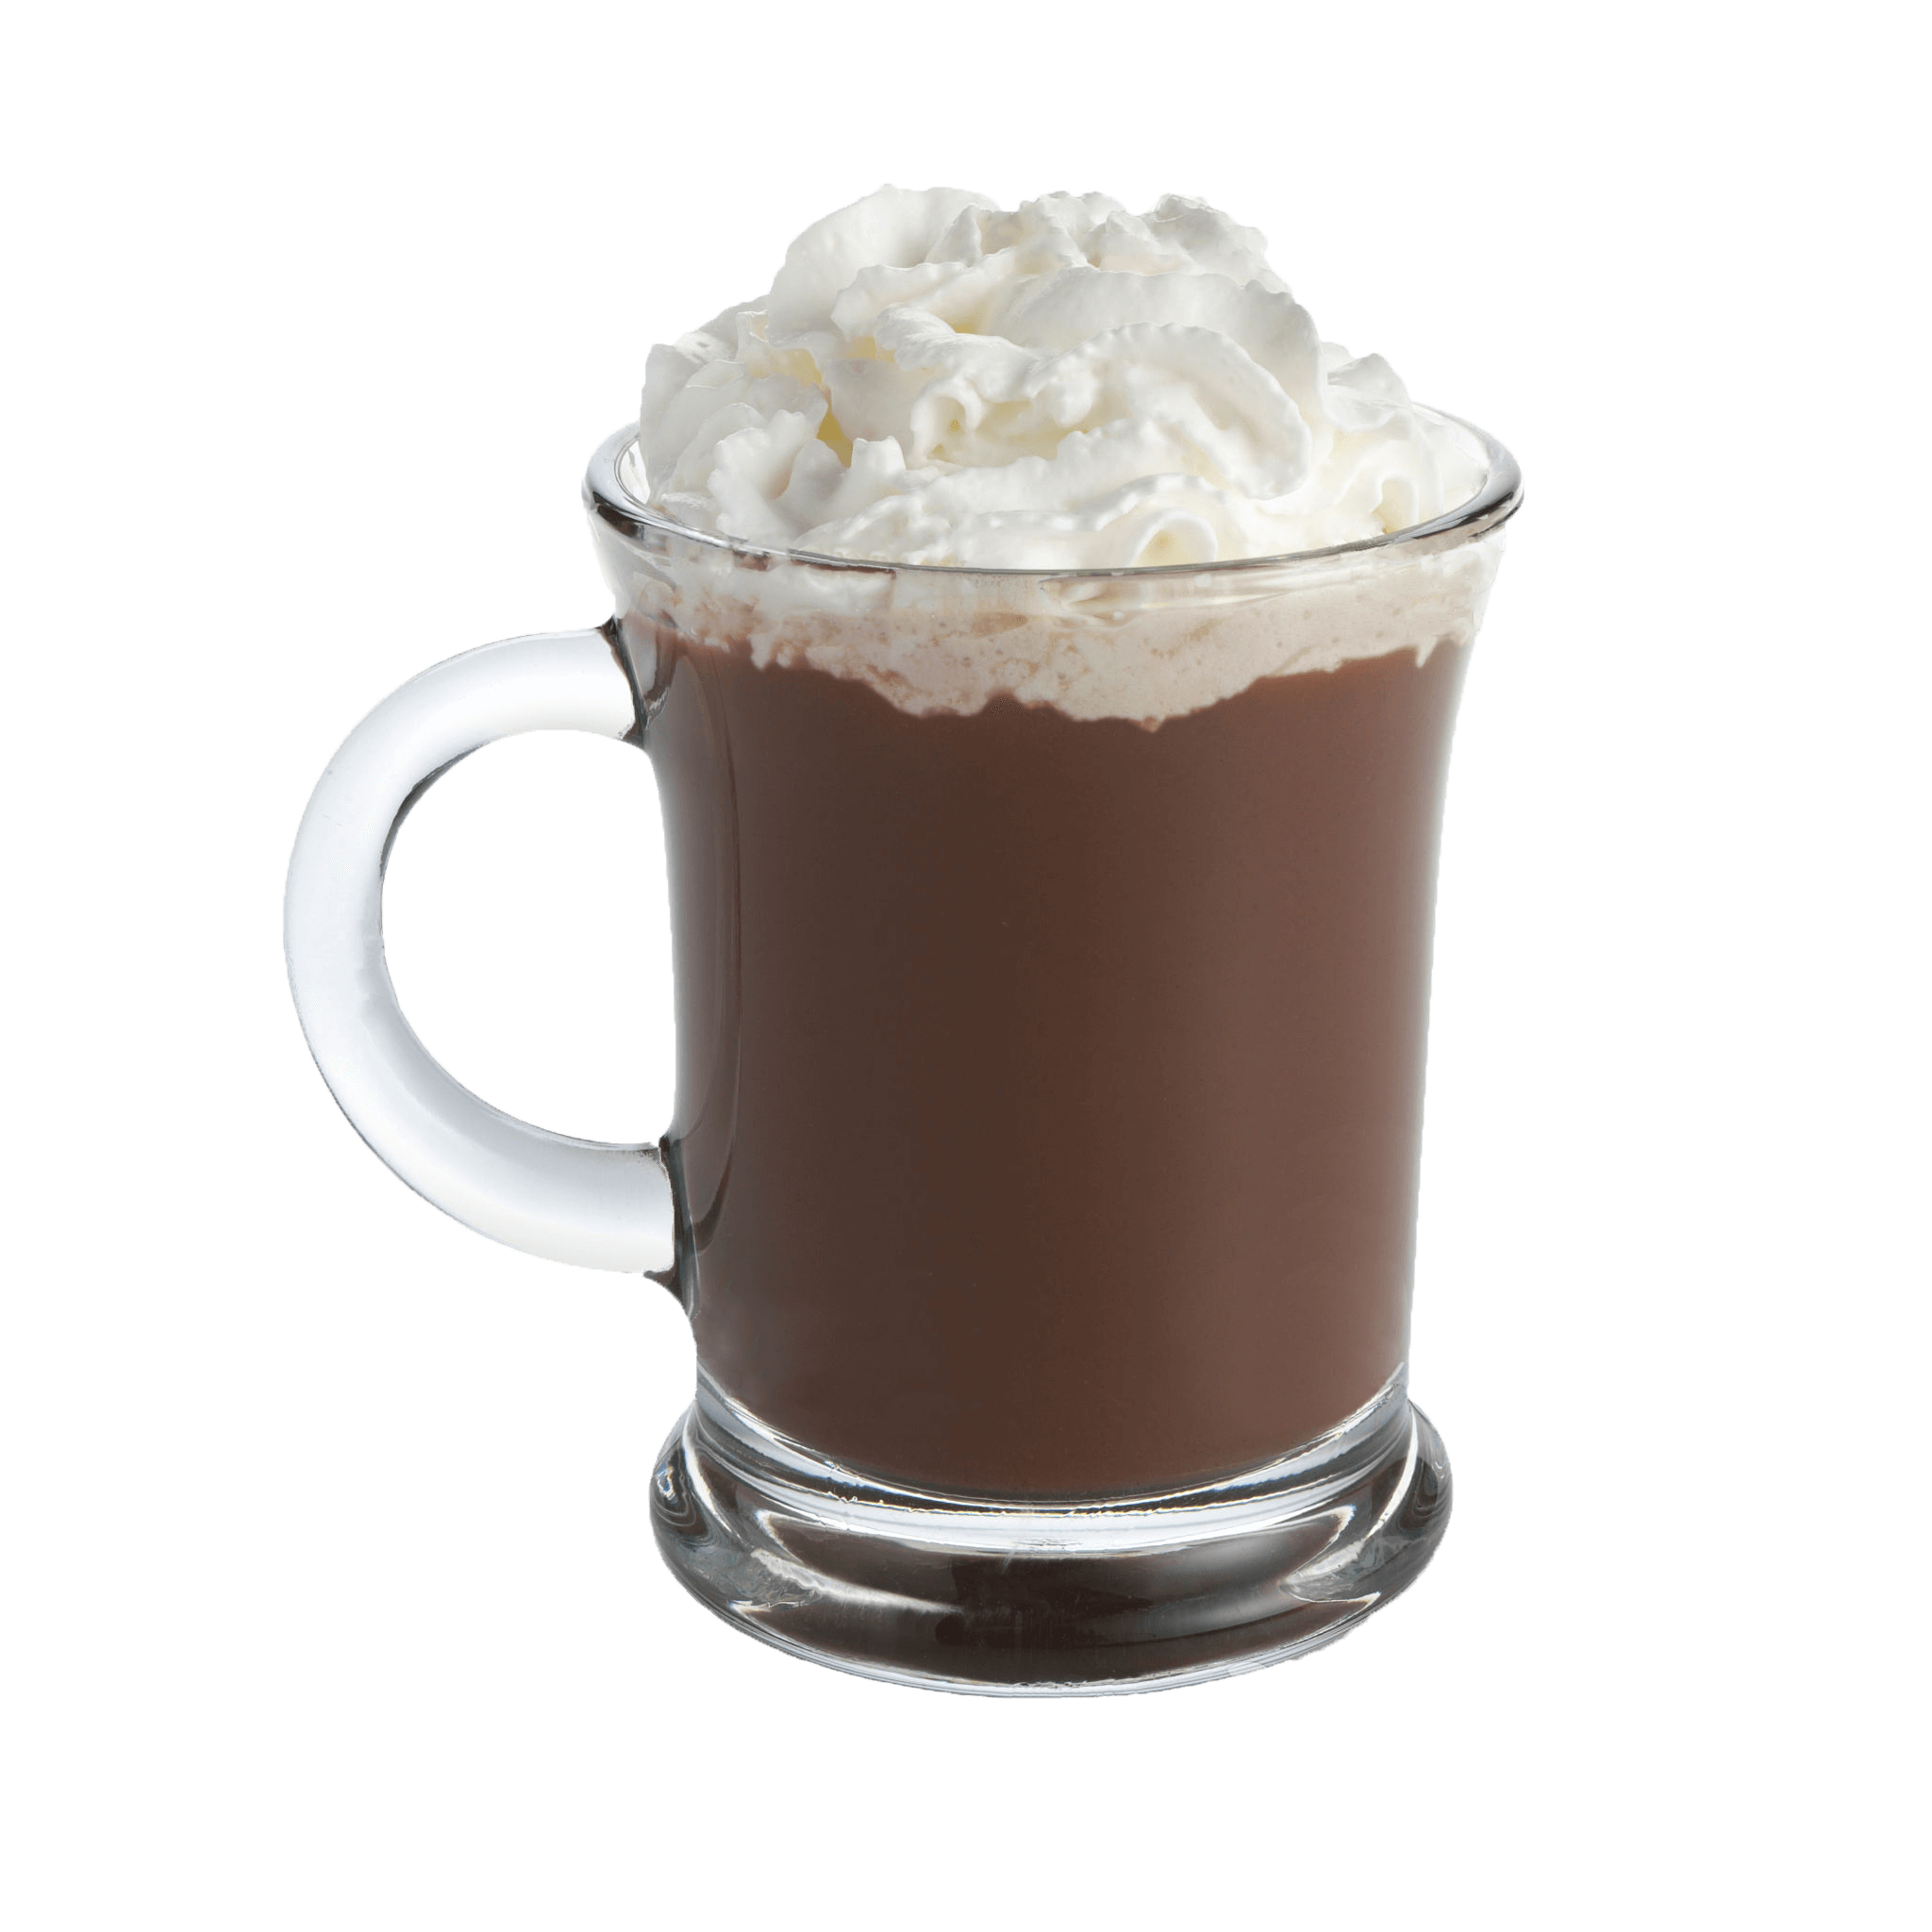 PNG Hot Chocolate - 69740